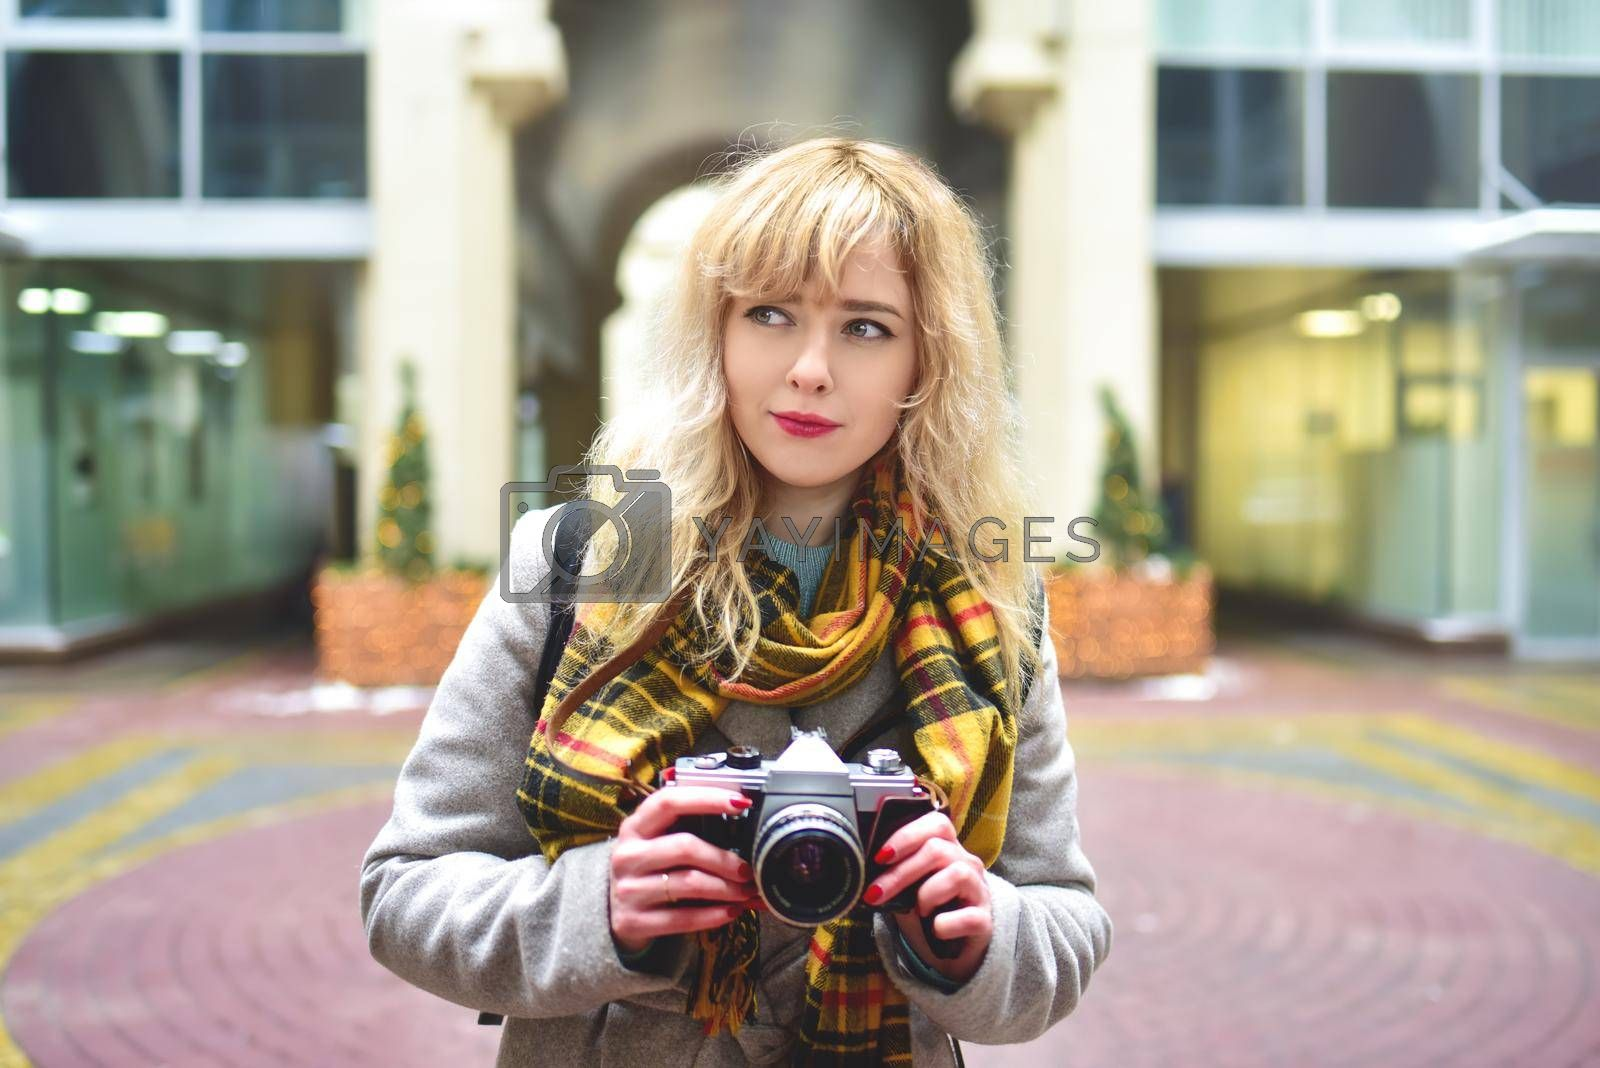 Blonde pretty photographer woman with retro camera in her hands while taking pictures at urban old architecture. Discover new places.